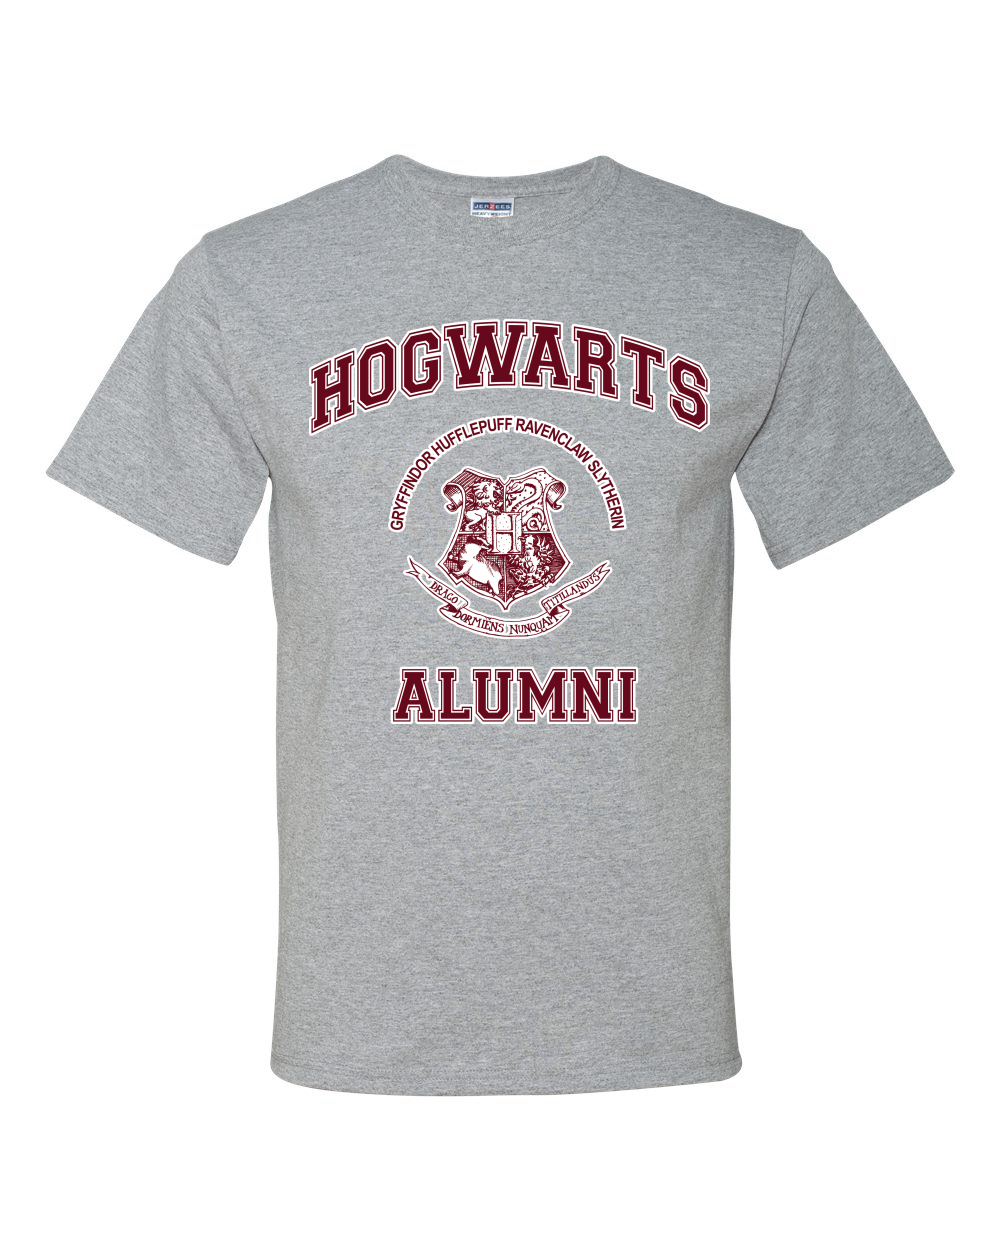 Hogwarts Alumni Potter Fan Mens Graphic T-Shirt Movie Tee